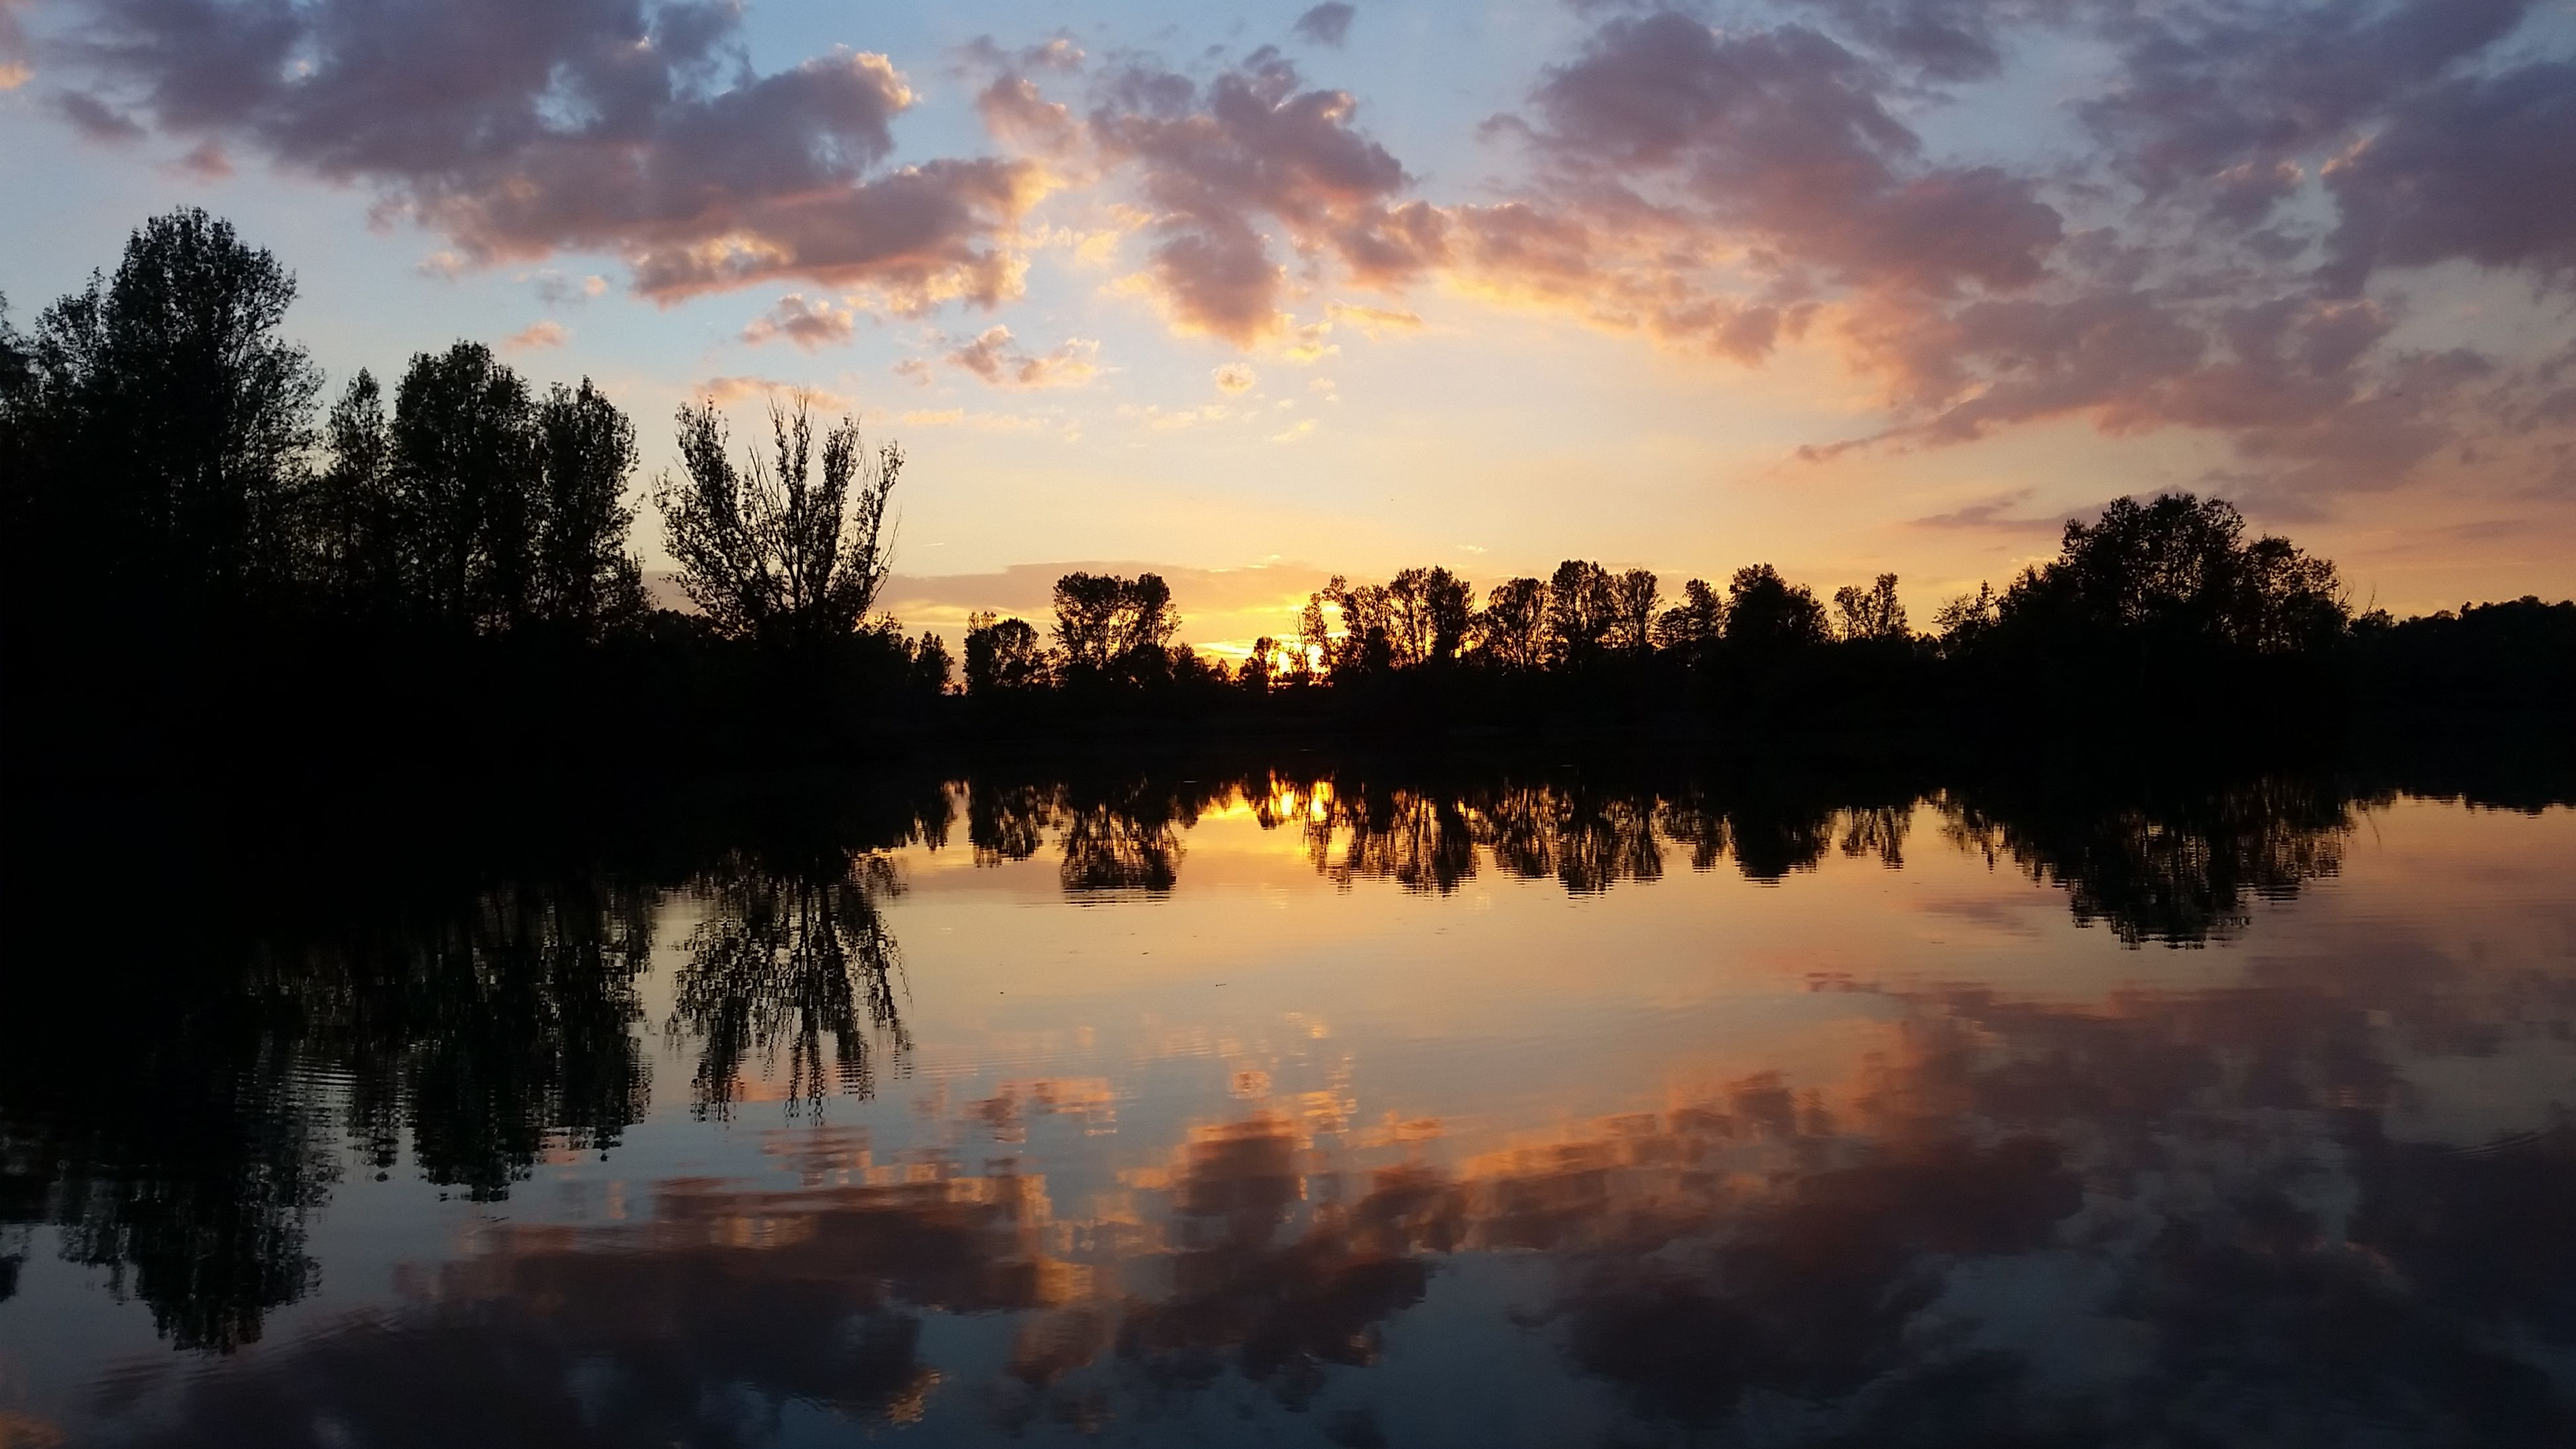 reflection, sunset, water, lake, tree, tranquil scene, scenics, tranquility, silhouette, beauty in nature, majestic, calm, waterfront, orange color, nature, sky, standing water, cloud, non-urban scene, outdoors, blue, cloud - sky, countryside, no people, outline, dramatic sky